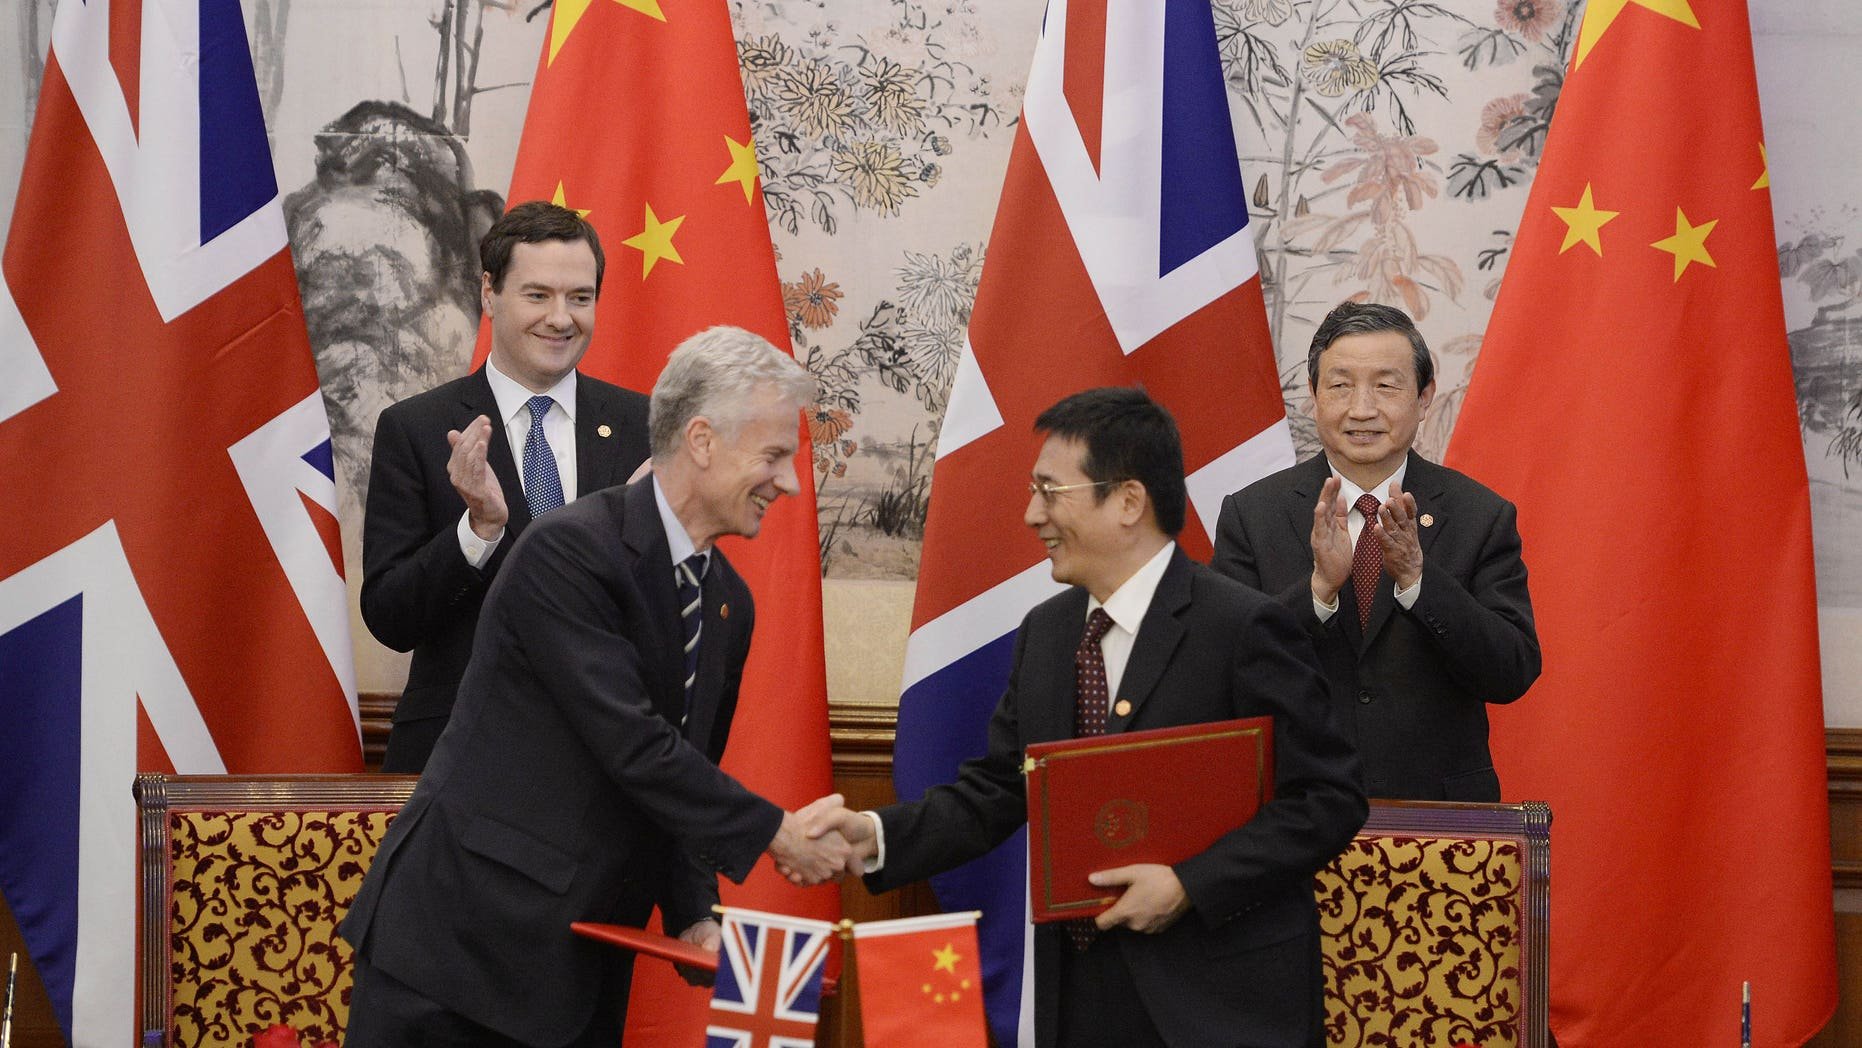 Britain's Chancellor of the Exchequer George Osborne, left, and Chinese Vice premier Ma Kai applaud as their officials shake hands after exchanging signed documents of their agreement during a signing ceremony at the Diaoyutai Guesthouse in Beijing Tuesday, Oct. 15, 2013. (AP Photo/Kota Endo, Pool)